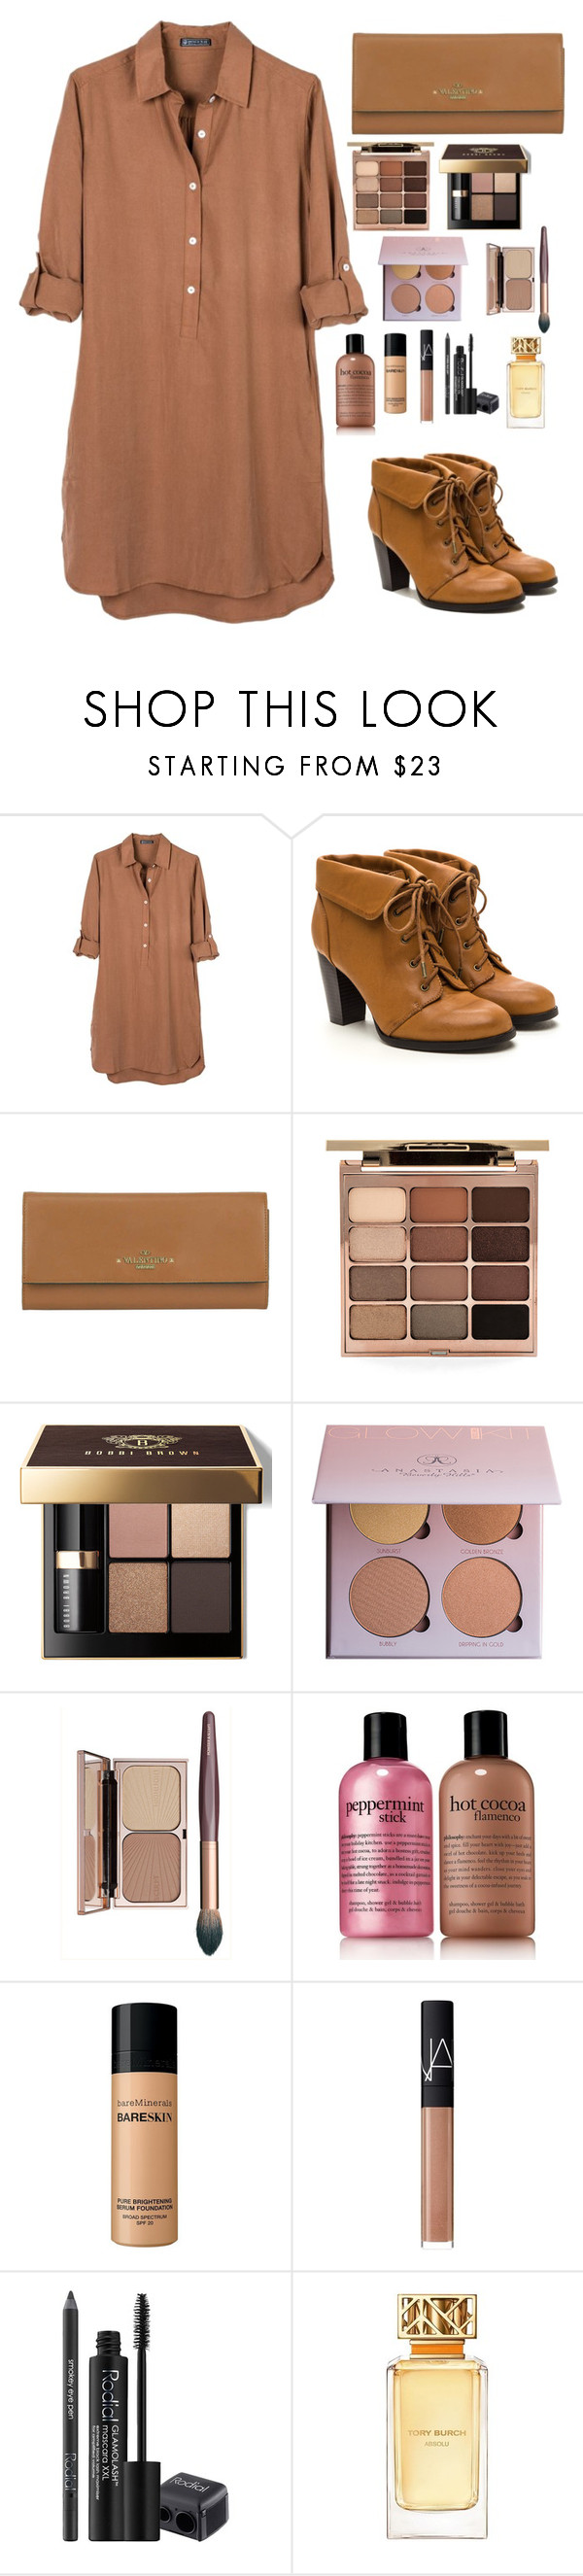 """""""86/1000"""" by nagra-muskan ❤ liked on Polyvore featuring United by Blue, Valentino, Stila, Bobbi Brown Cosmetics, philosophy, Bare Escentuals, NARS Cosmetics, Rodial and Tory Burch"""